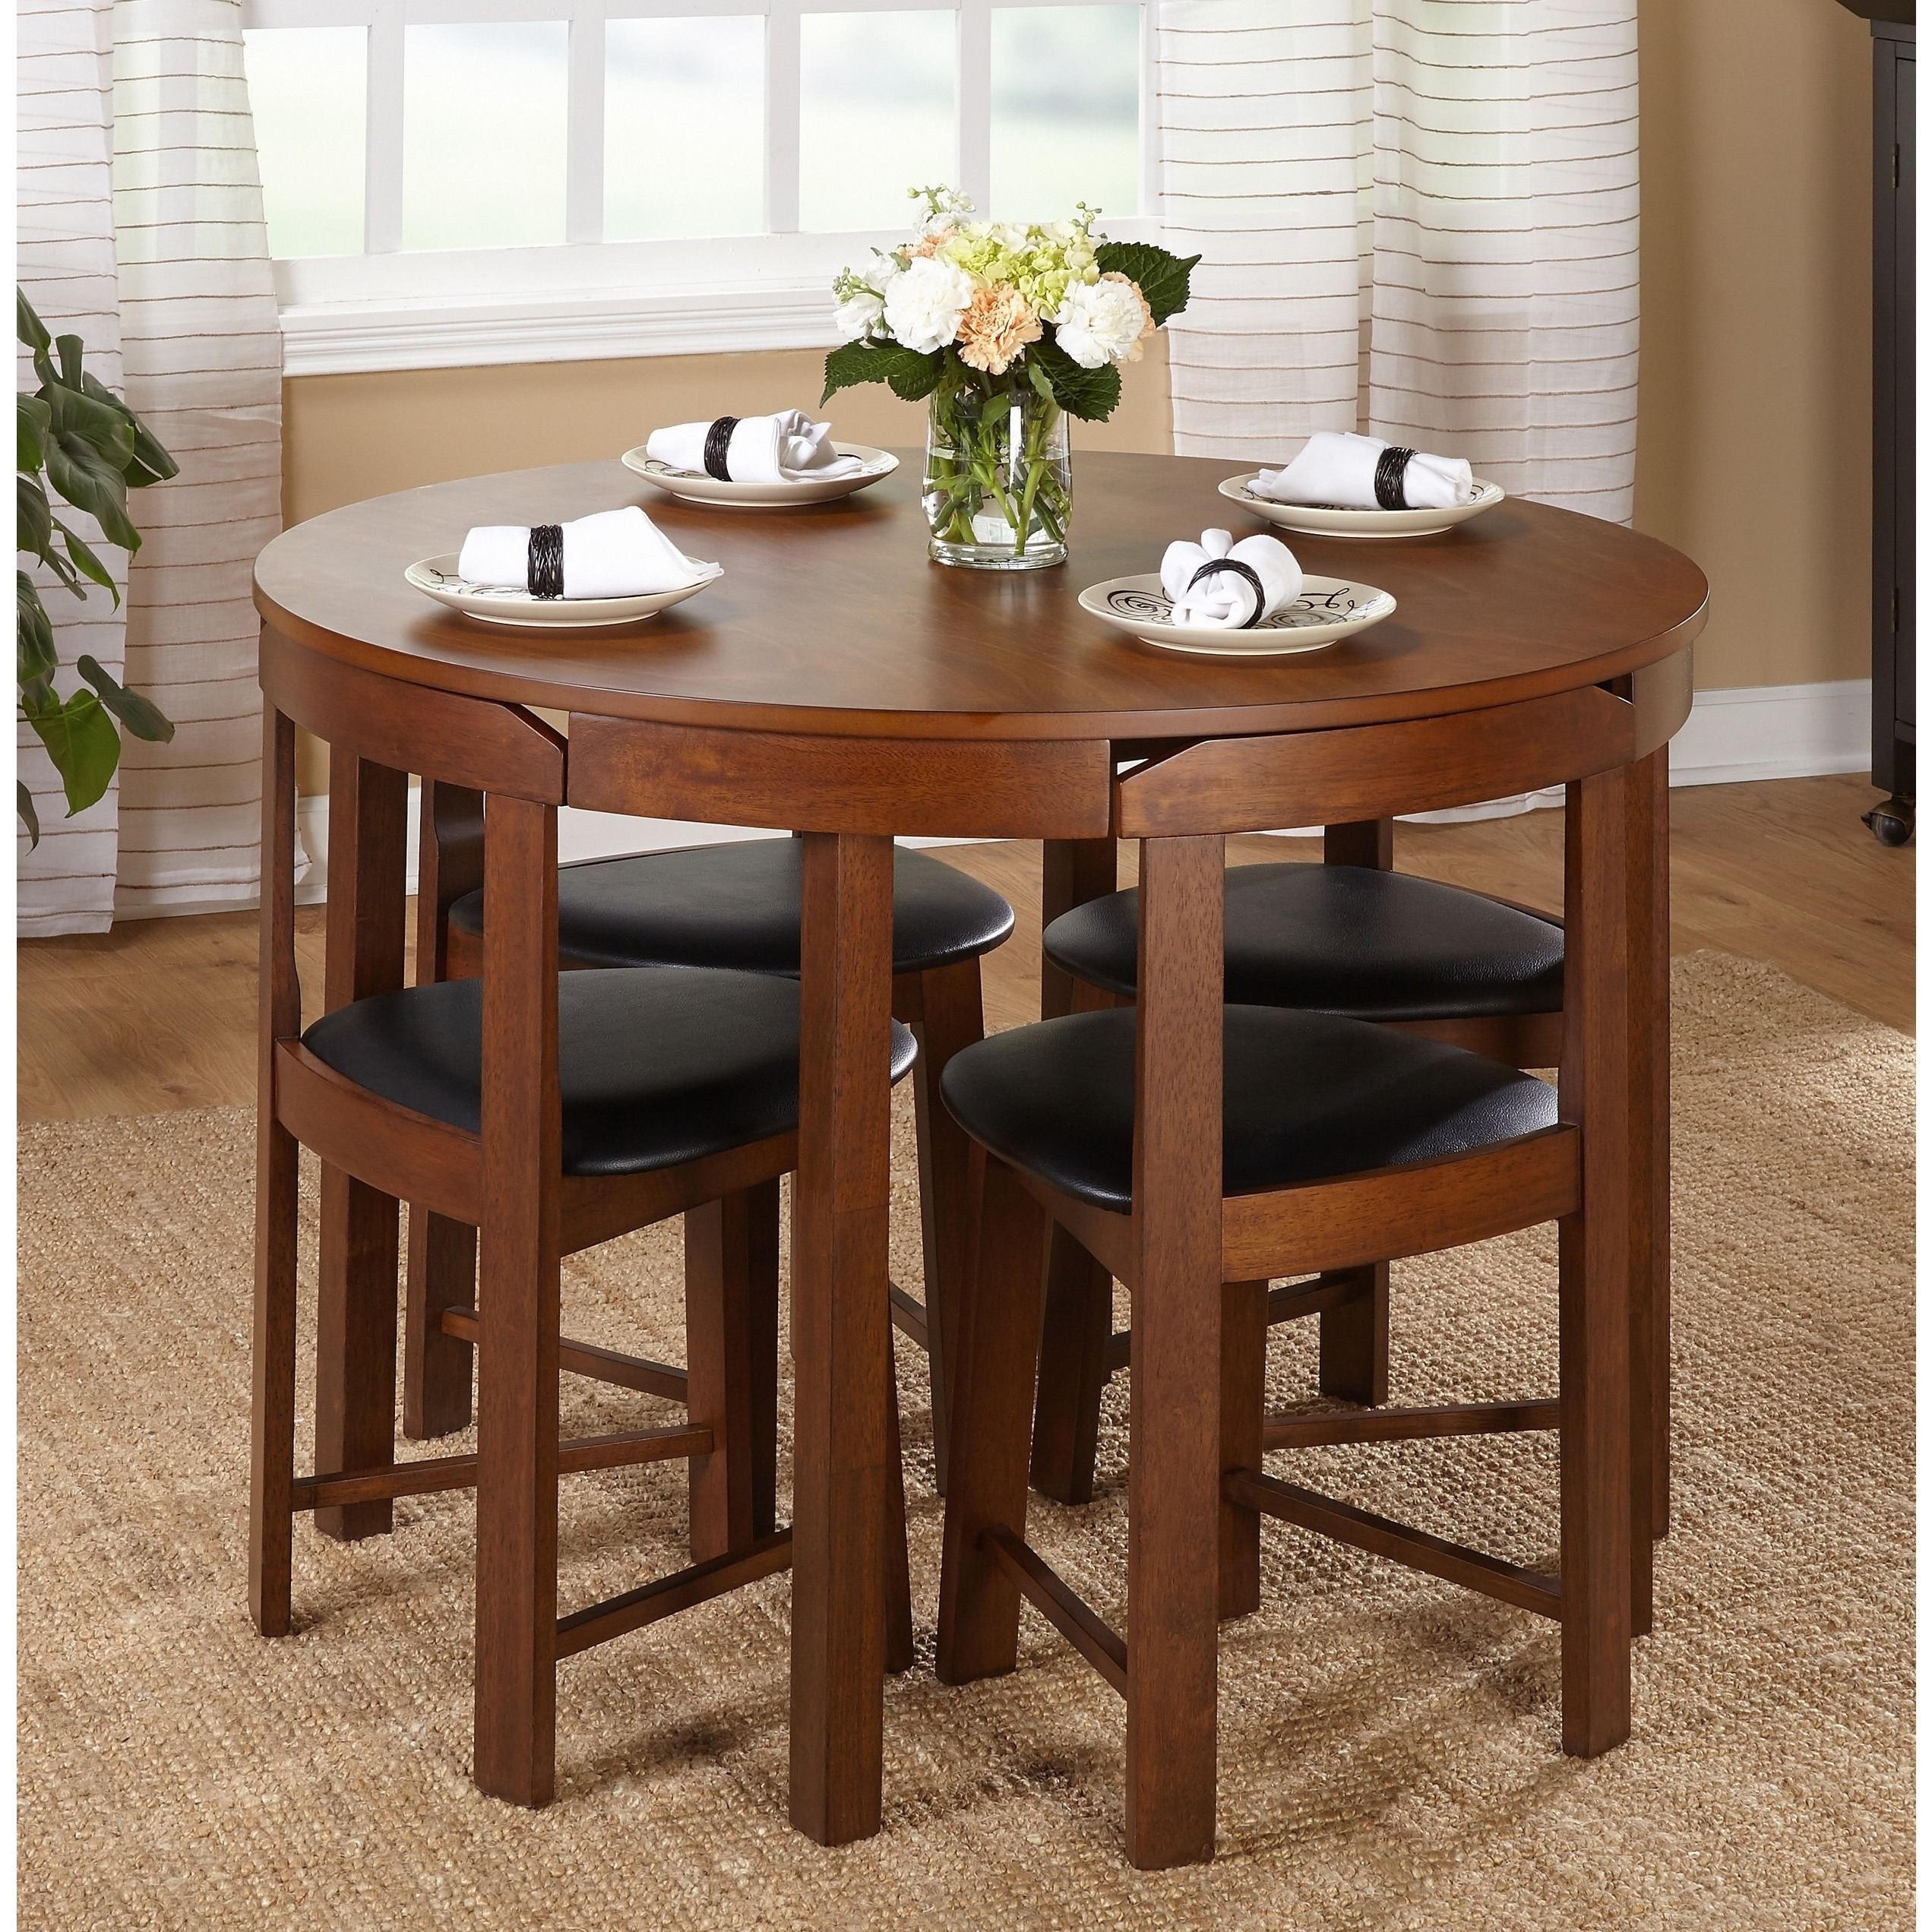 Fashionable The 5 Piece Tobey Compact Dining Setsimple Living Offers Four Throughout Small Dining Sets (View 2 of 25)